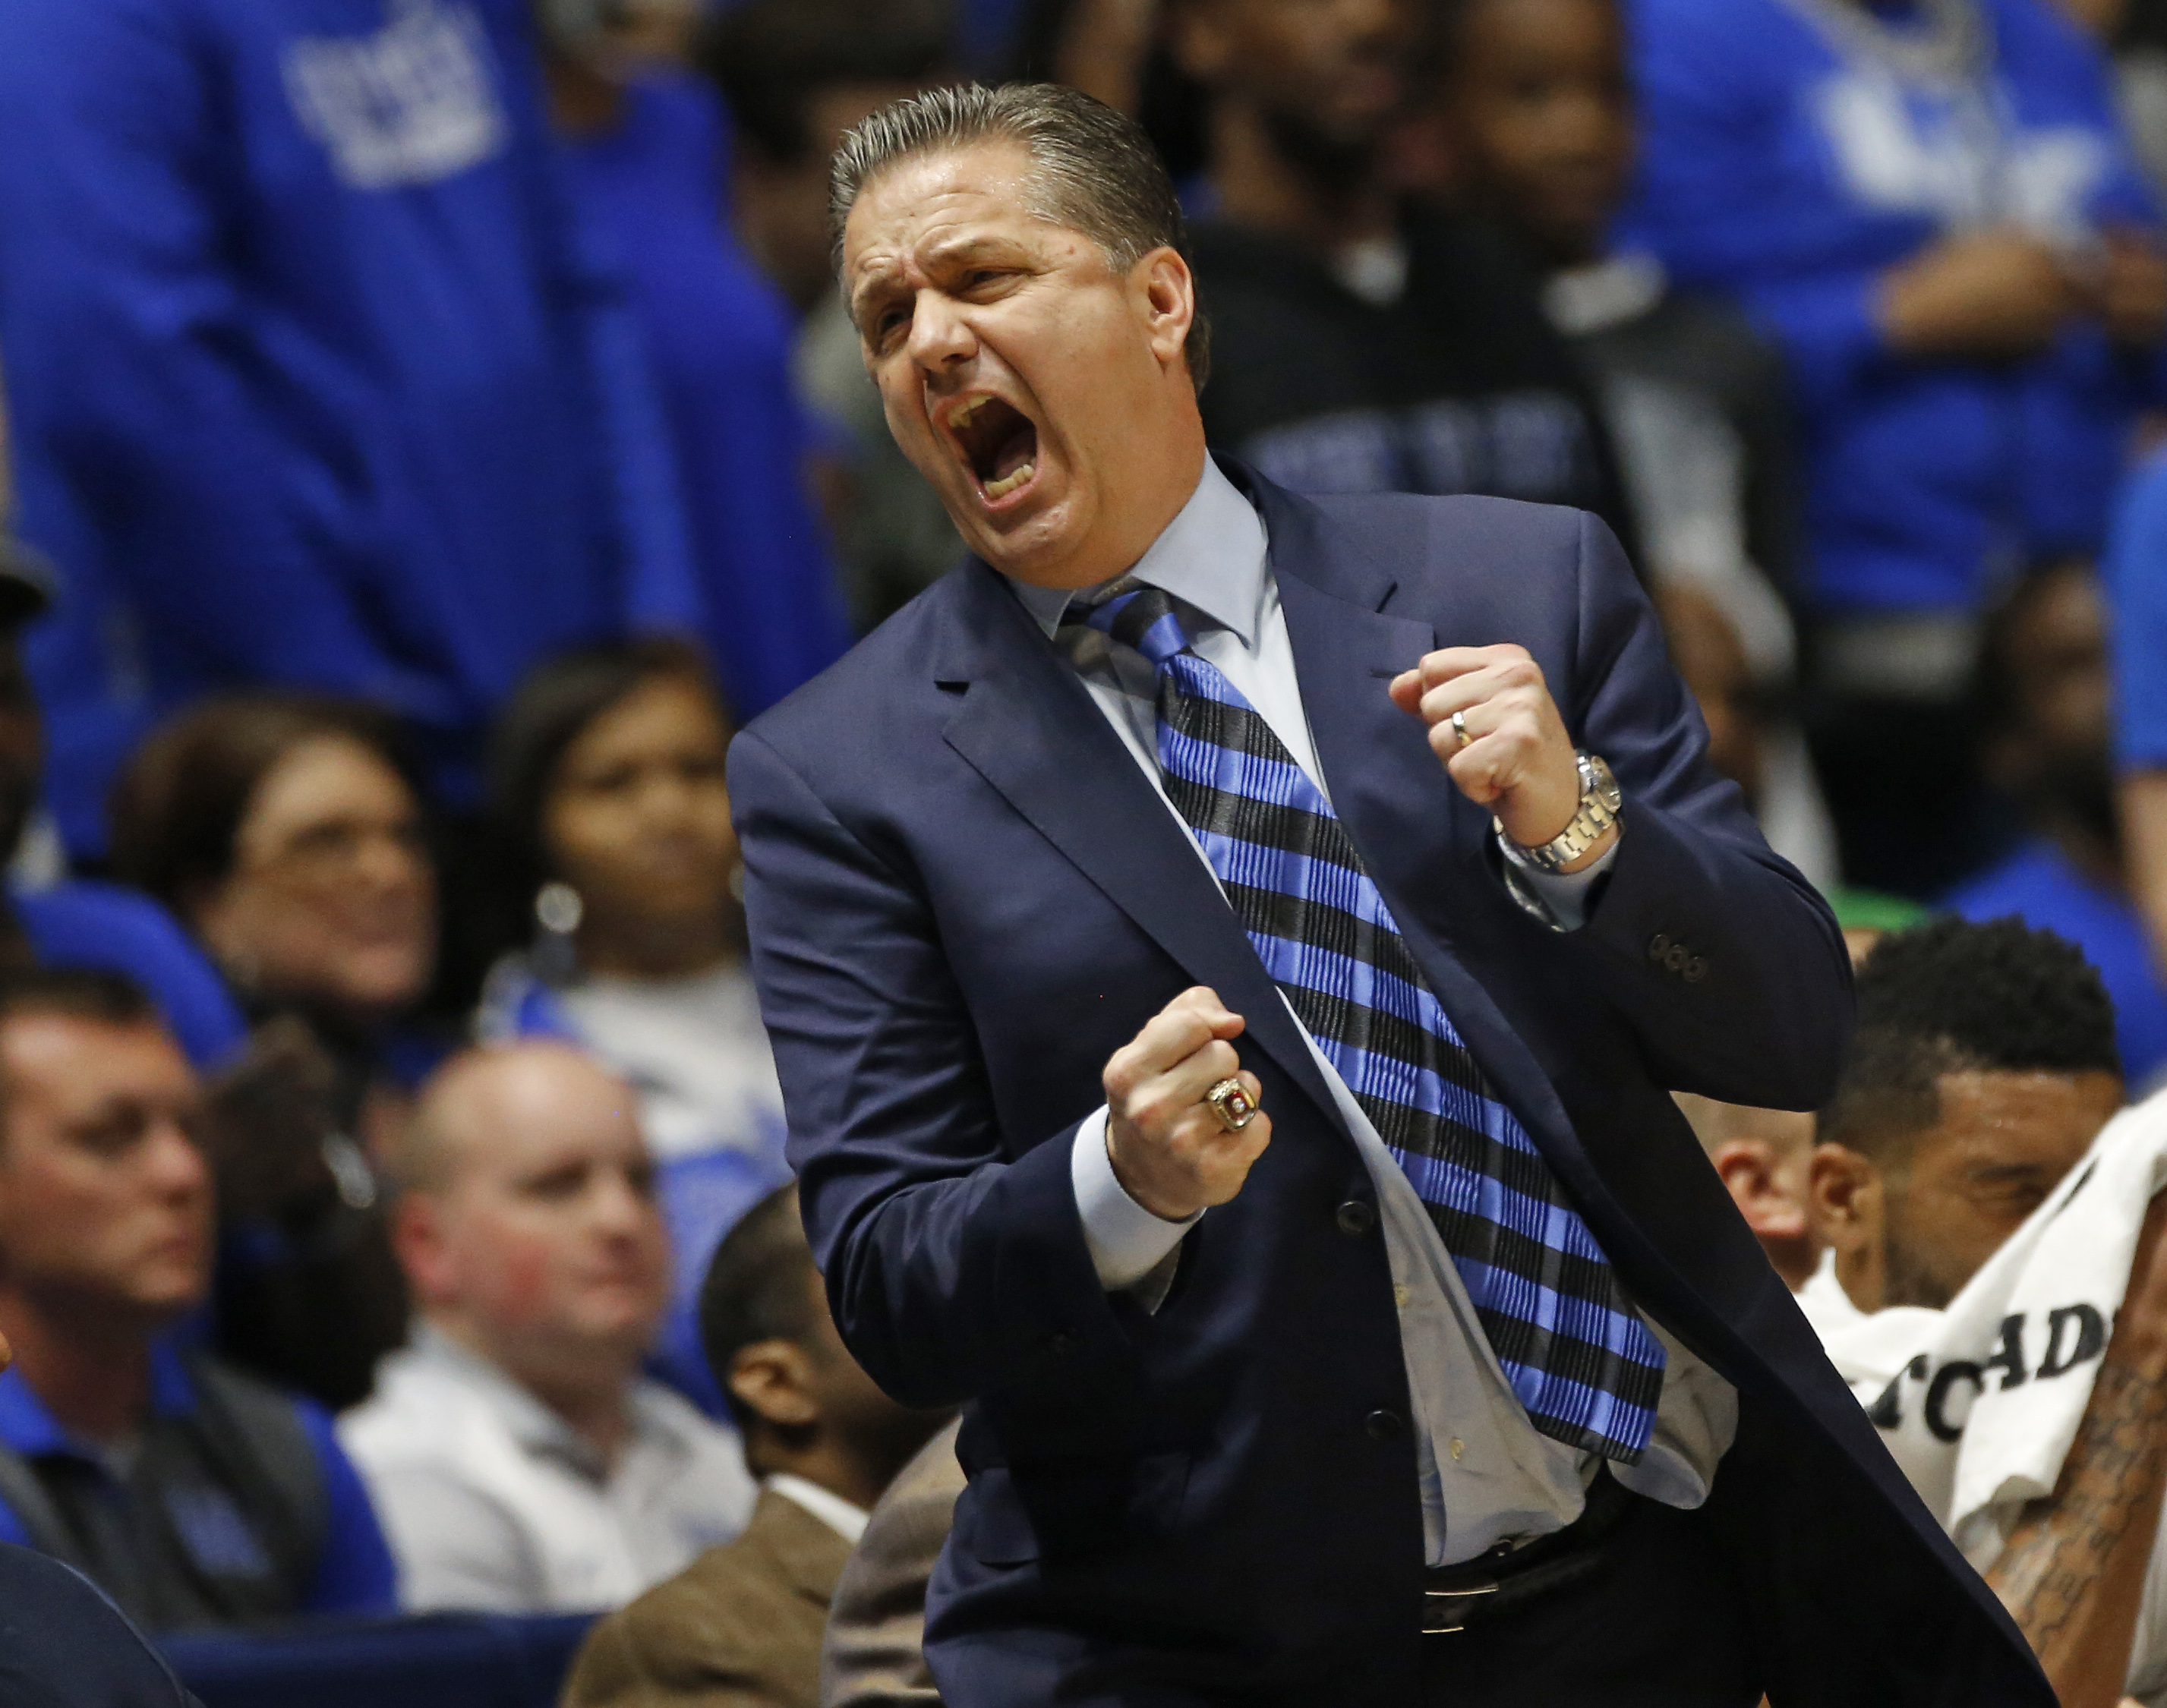 Kentucky head coach John Calipari reacts to a call during the first half of an NCAA college basketball game against Alabama in the Southeastern Conference tournament in Nashville, Tenn., Friday, March 11, 2016. (AP Photo/John Bazemore)